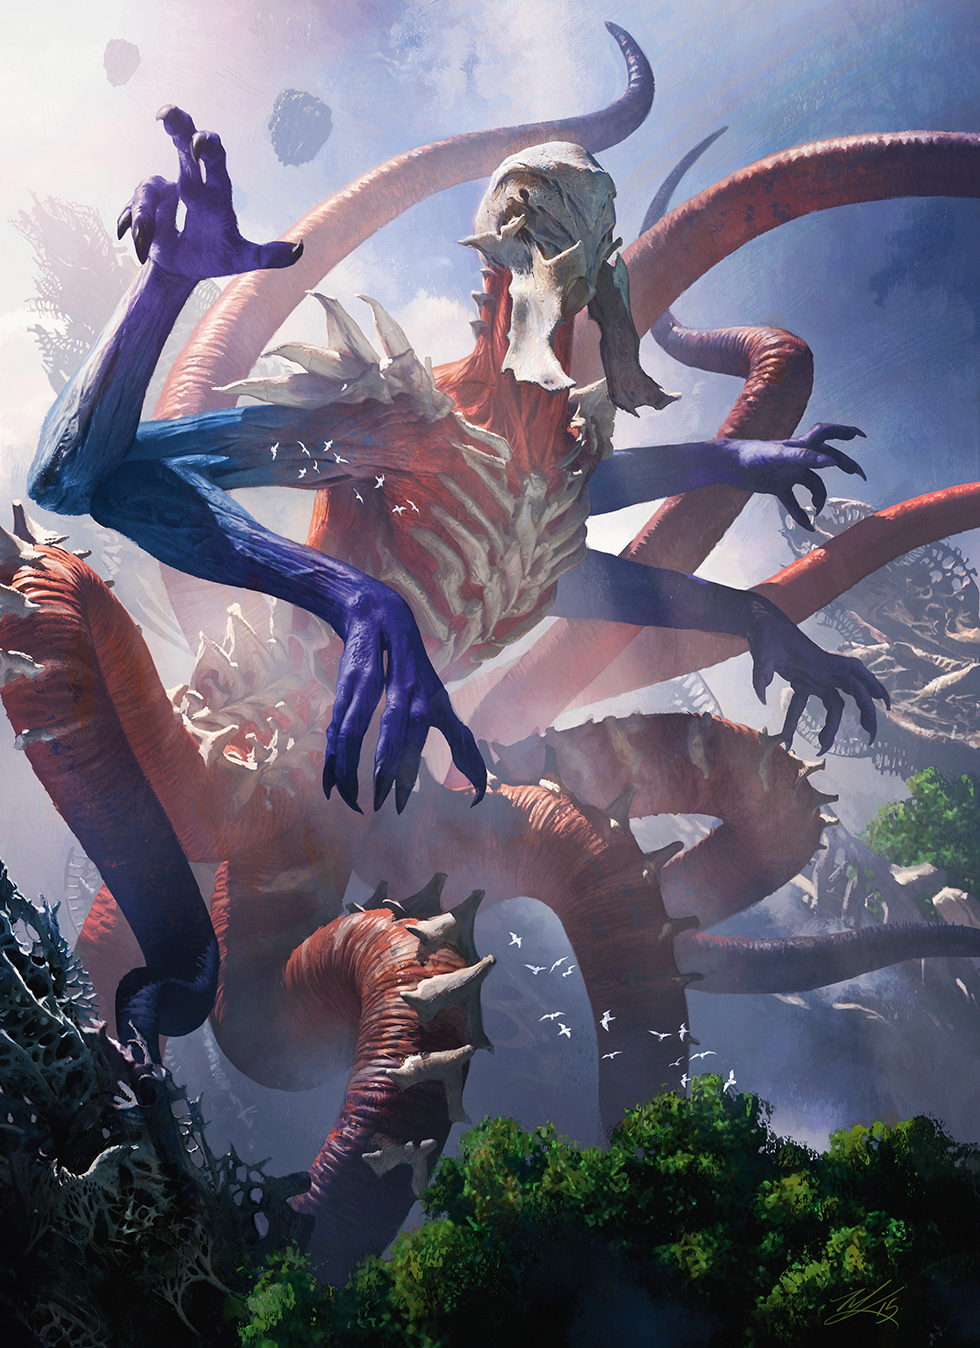 Battle for Zendikar review: Lovecraftian horror comes to